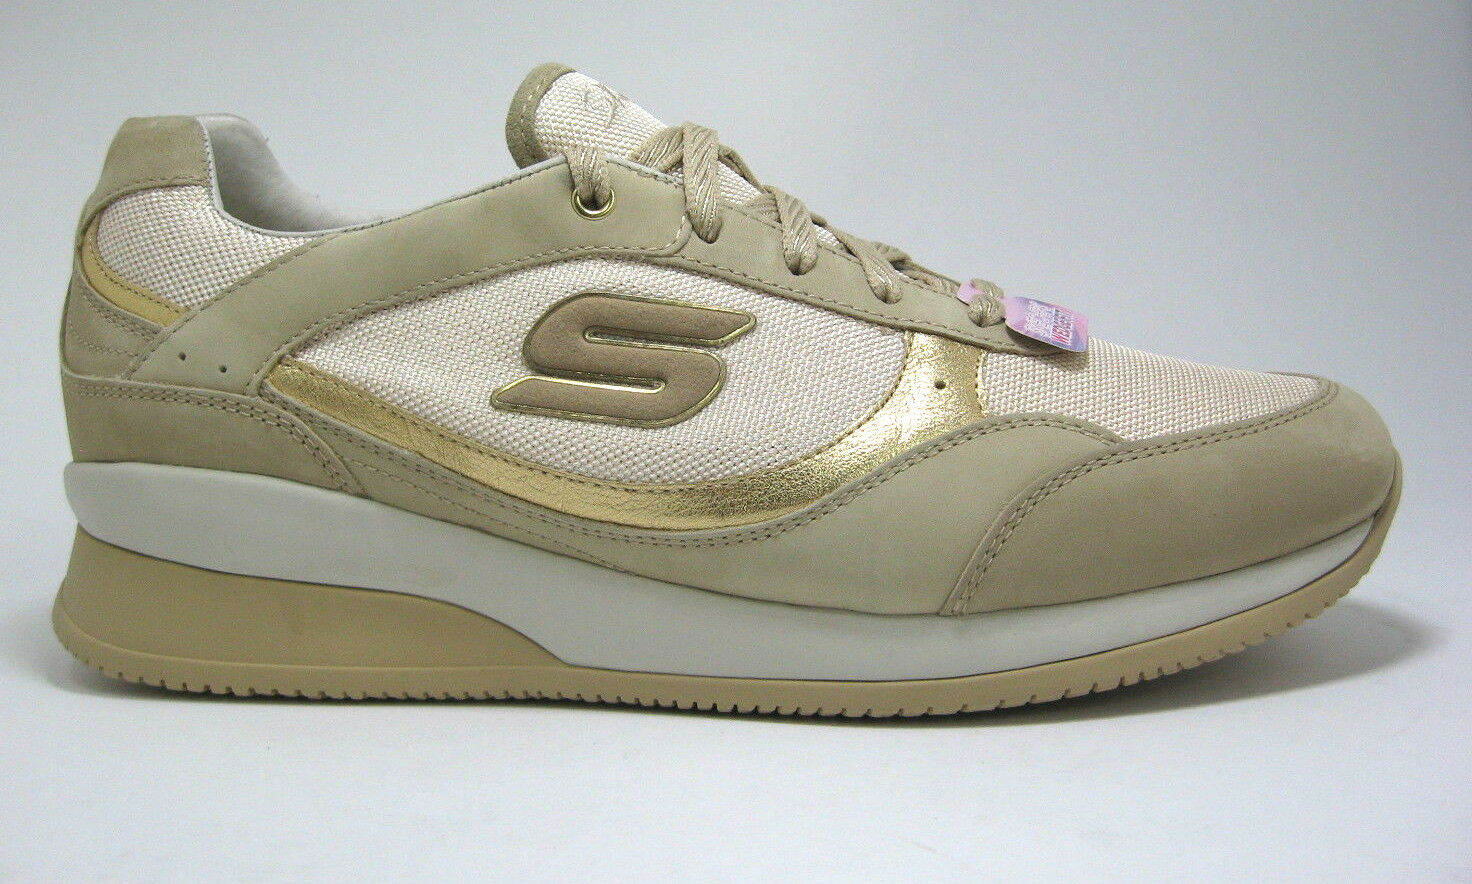 New Skechers Größe 9 Gold & Tan Wedge Fit Sneakers Vita Metallic Leder &Textile Sneakers Fit aa9e5c